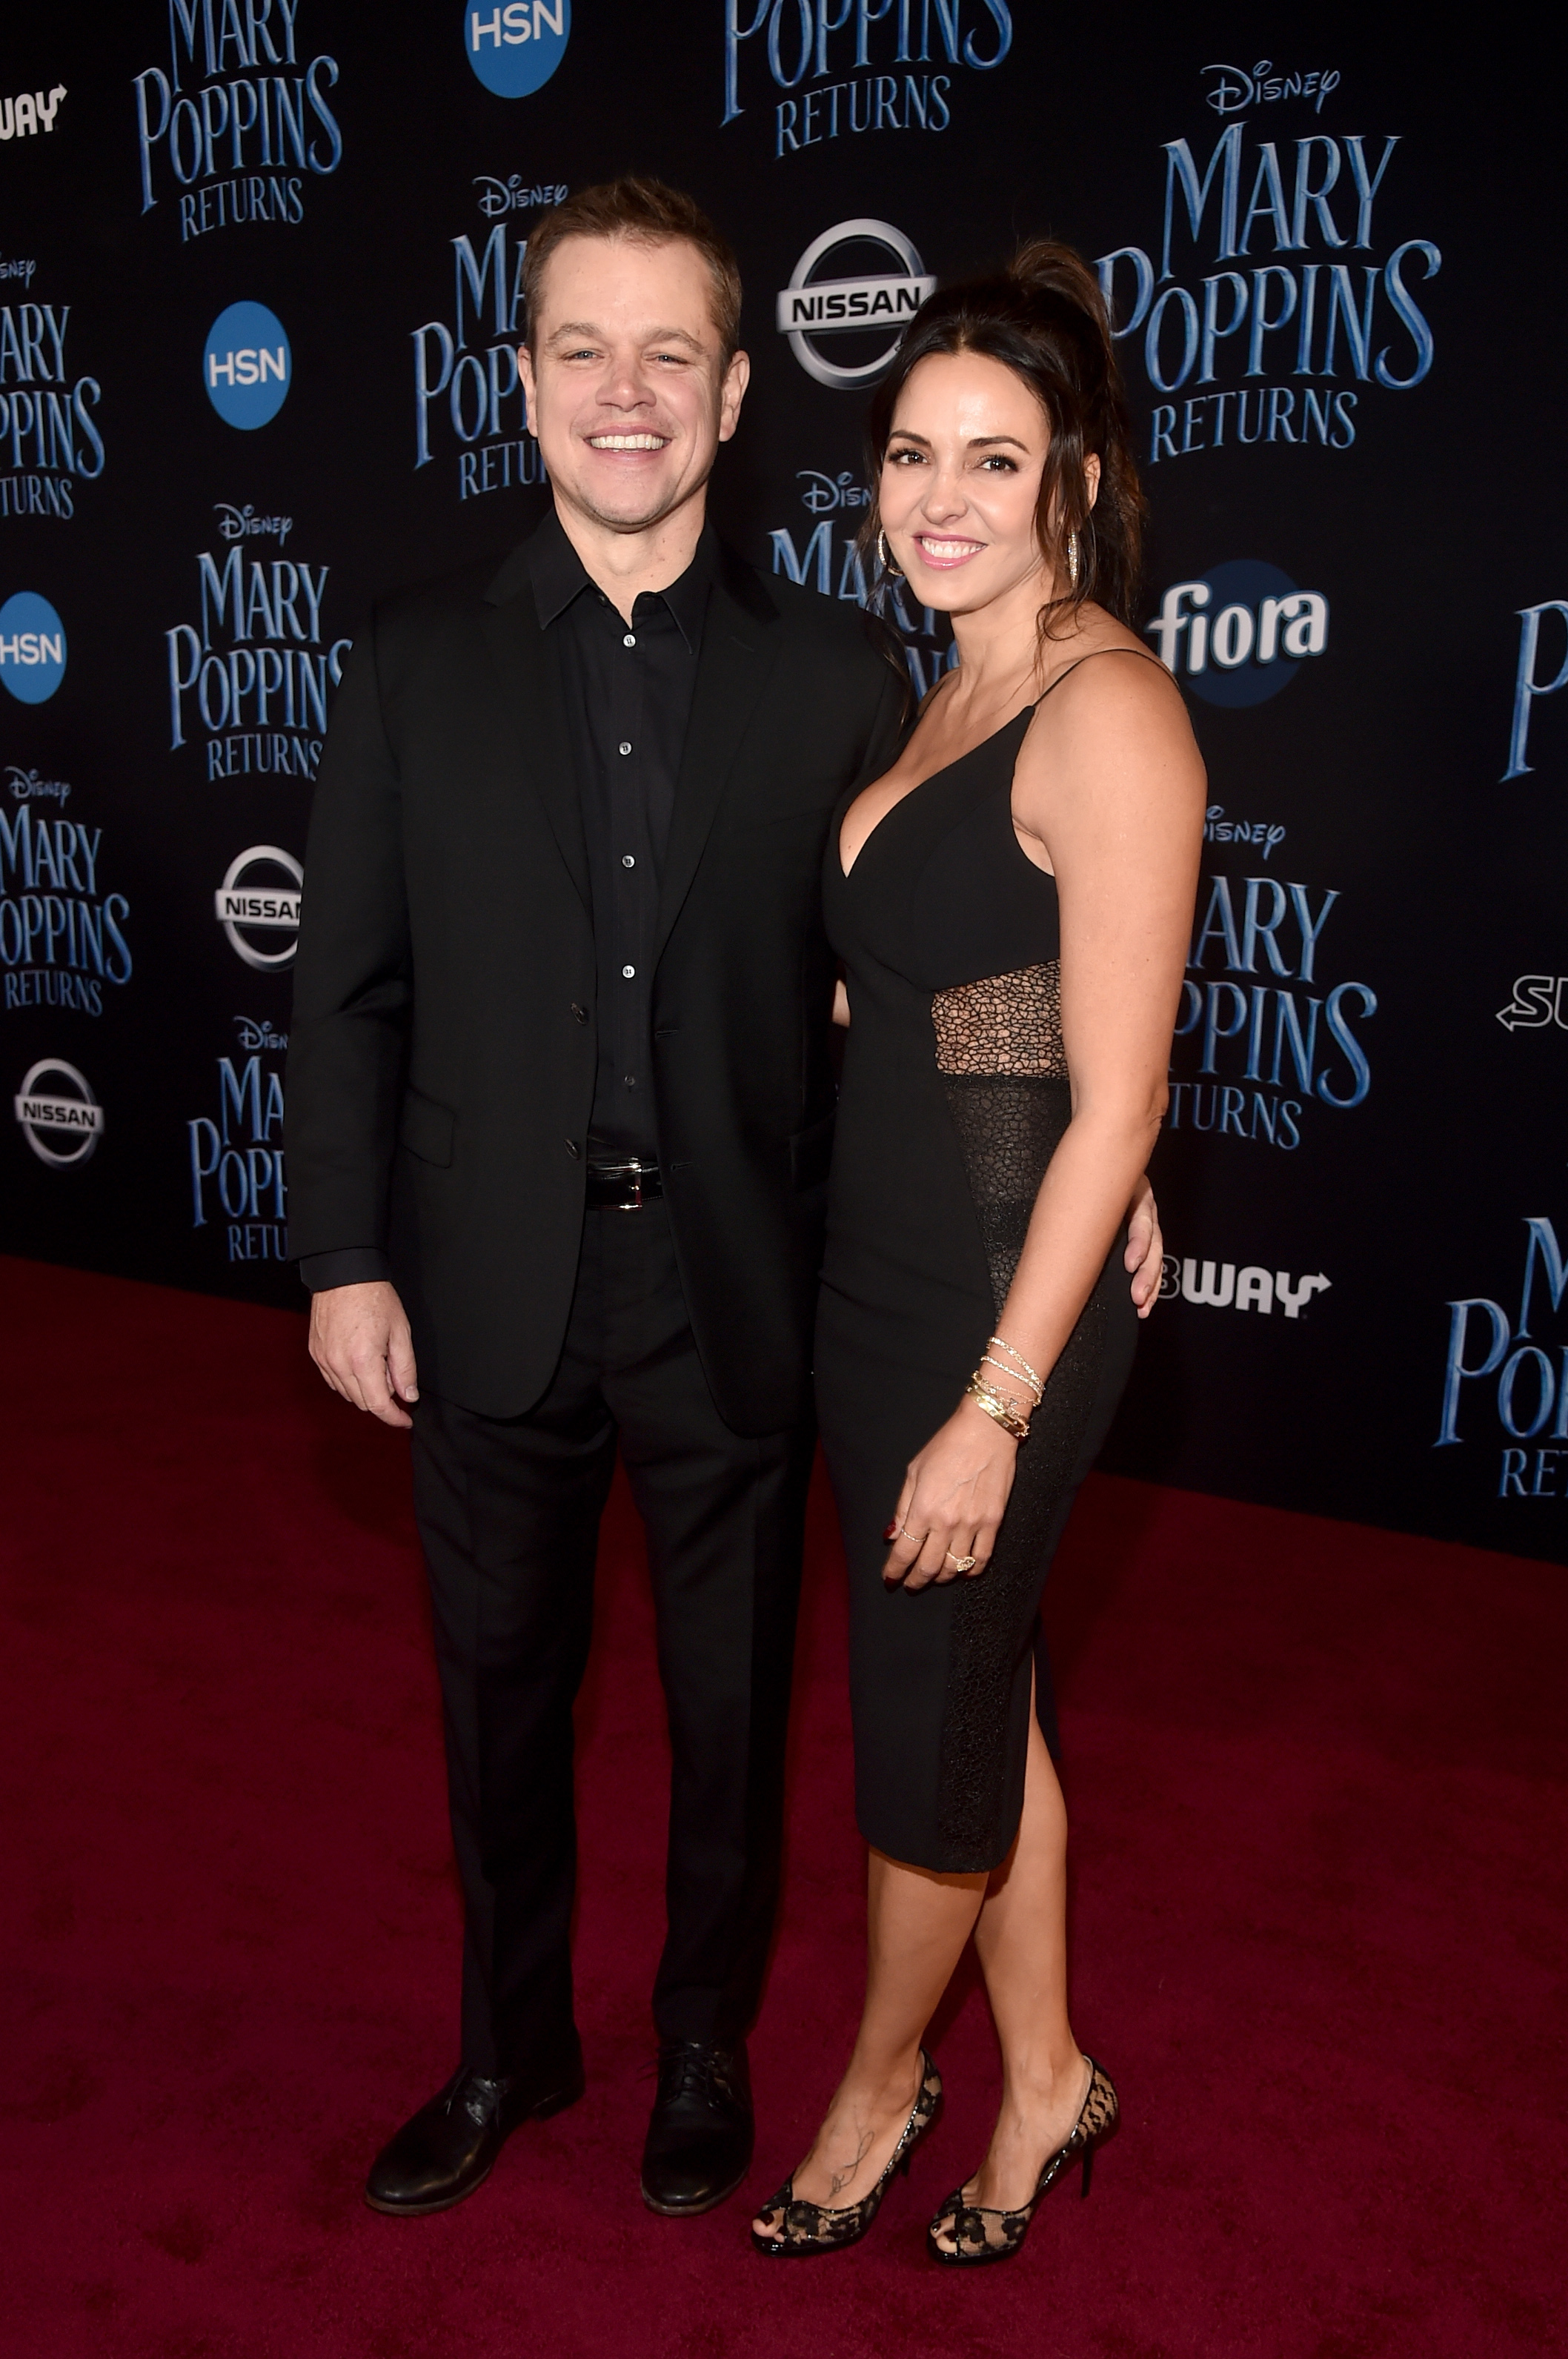 Matt Damon's Wife Luciana Barroso Totally Upstaged Him in the Sexiest LBD